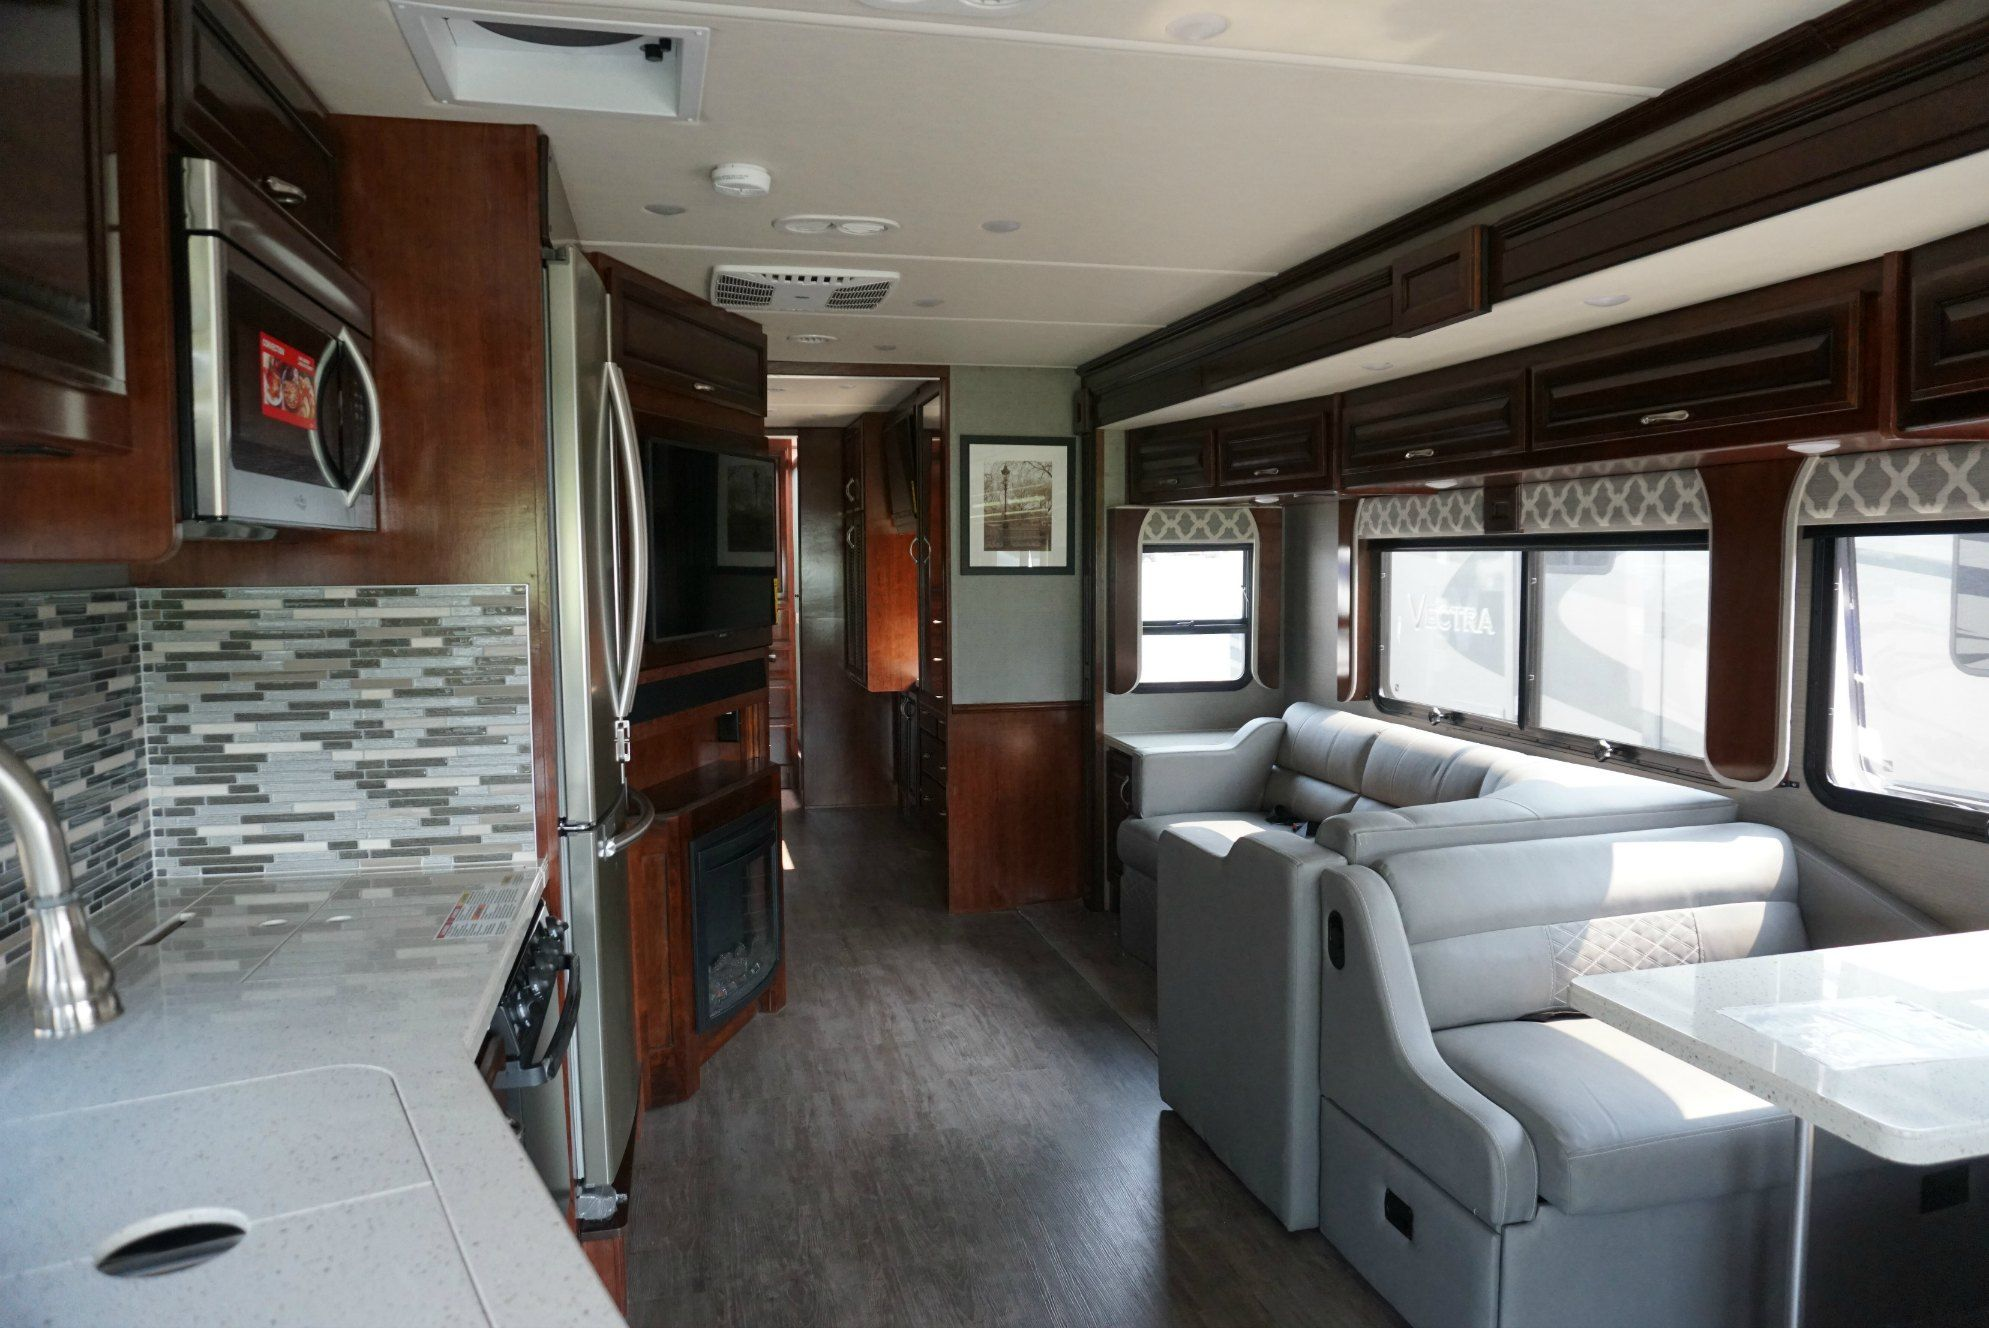 7 Things To Ask a Dealer Before You Buy an RV (With images